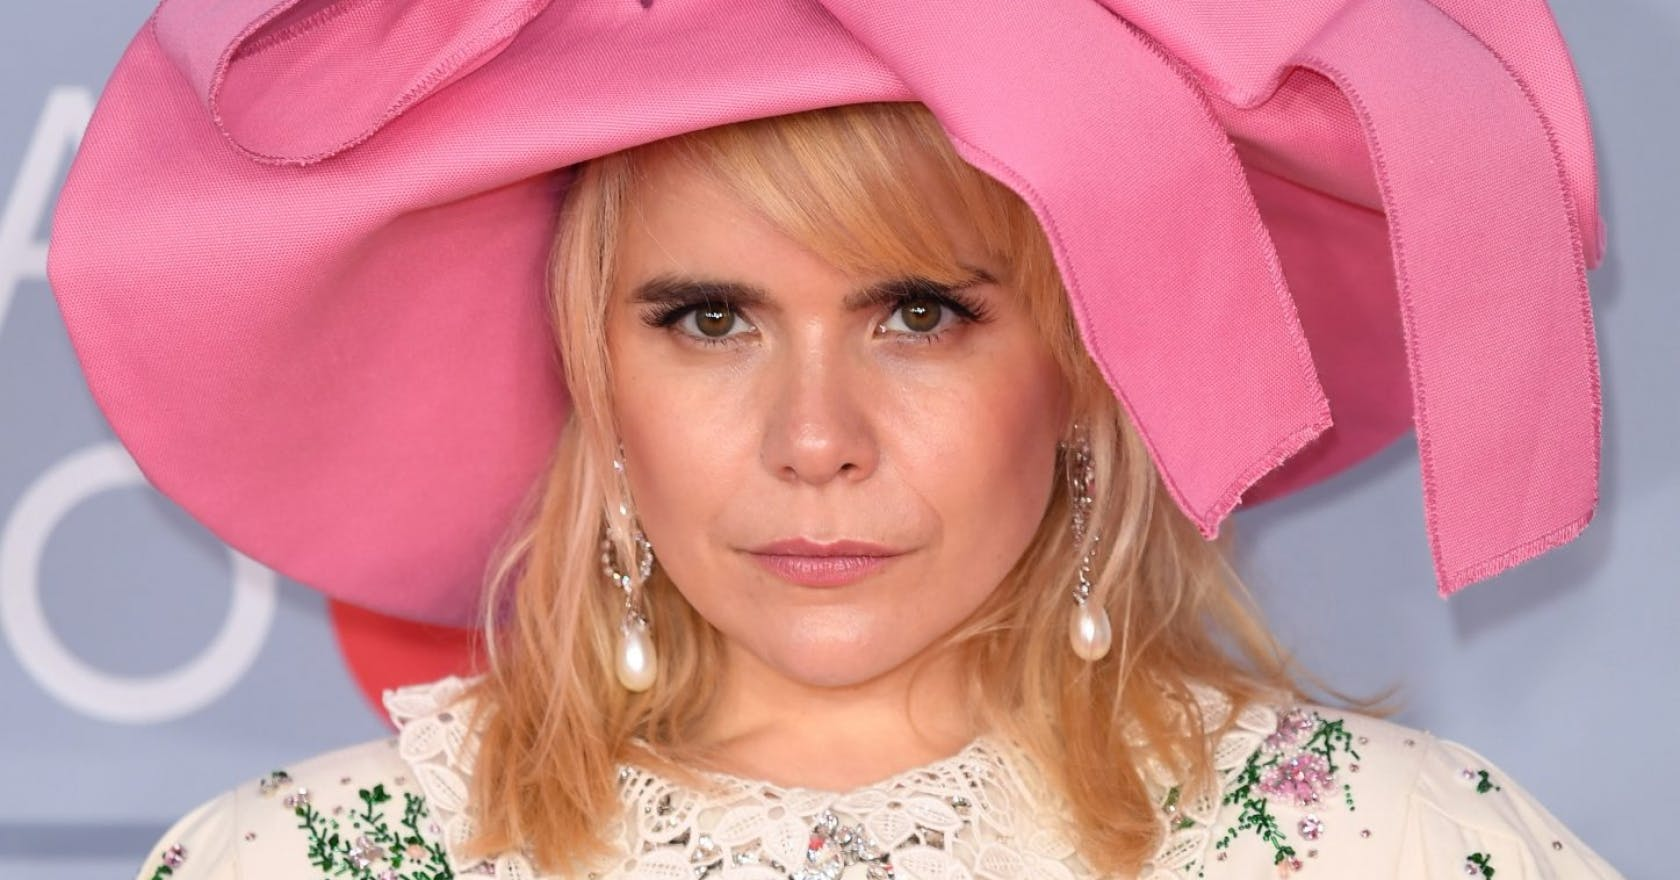 The frustrating truth behind Paloma Faith's beautiful pregnancy annoucenement